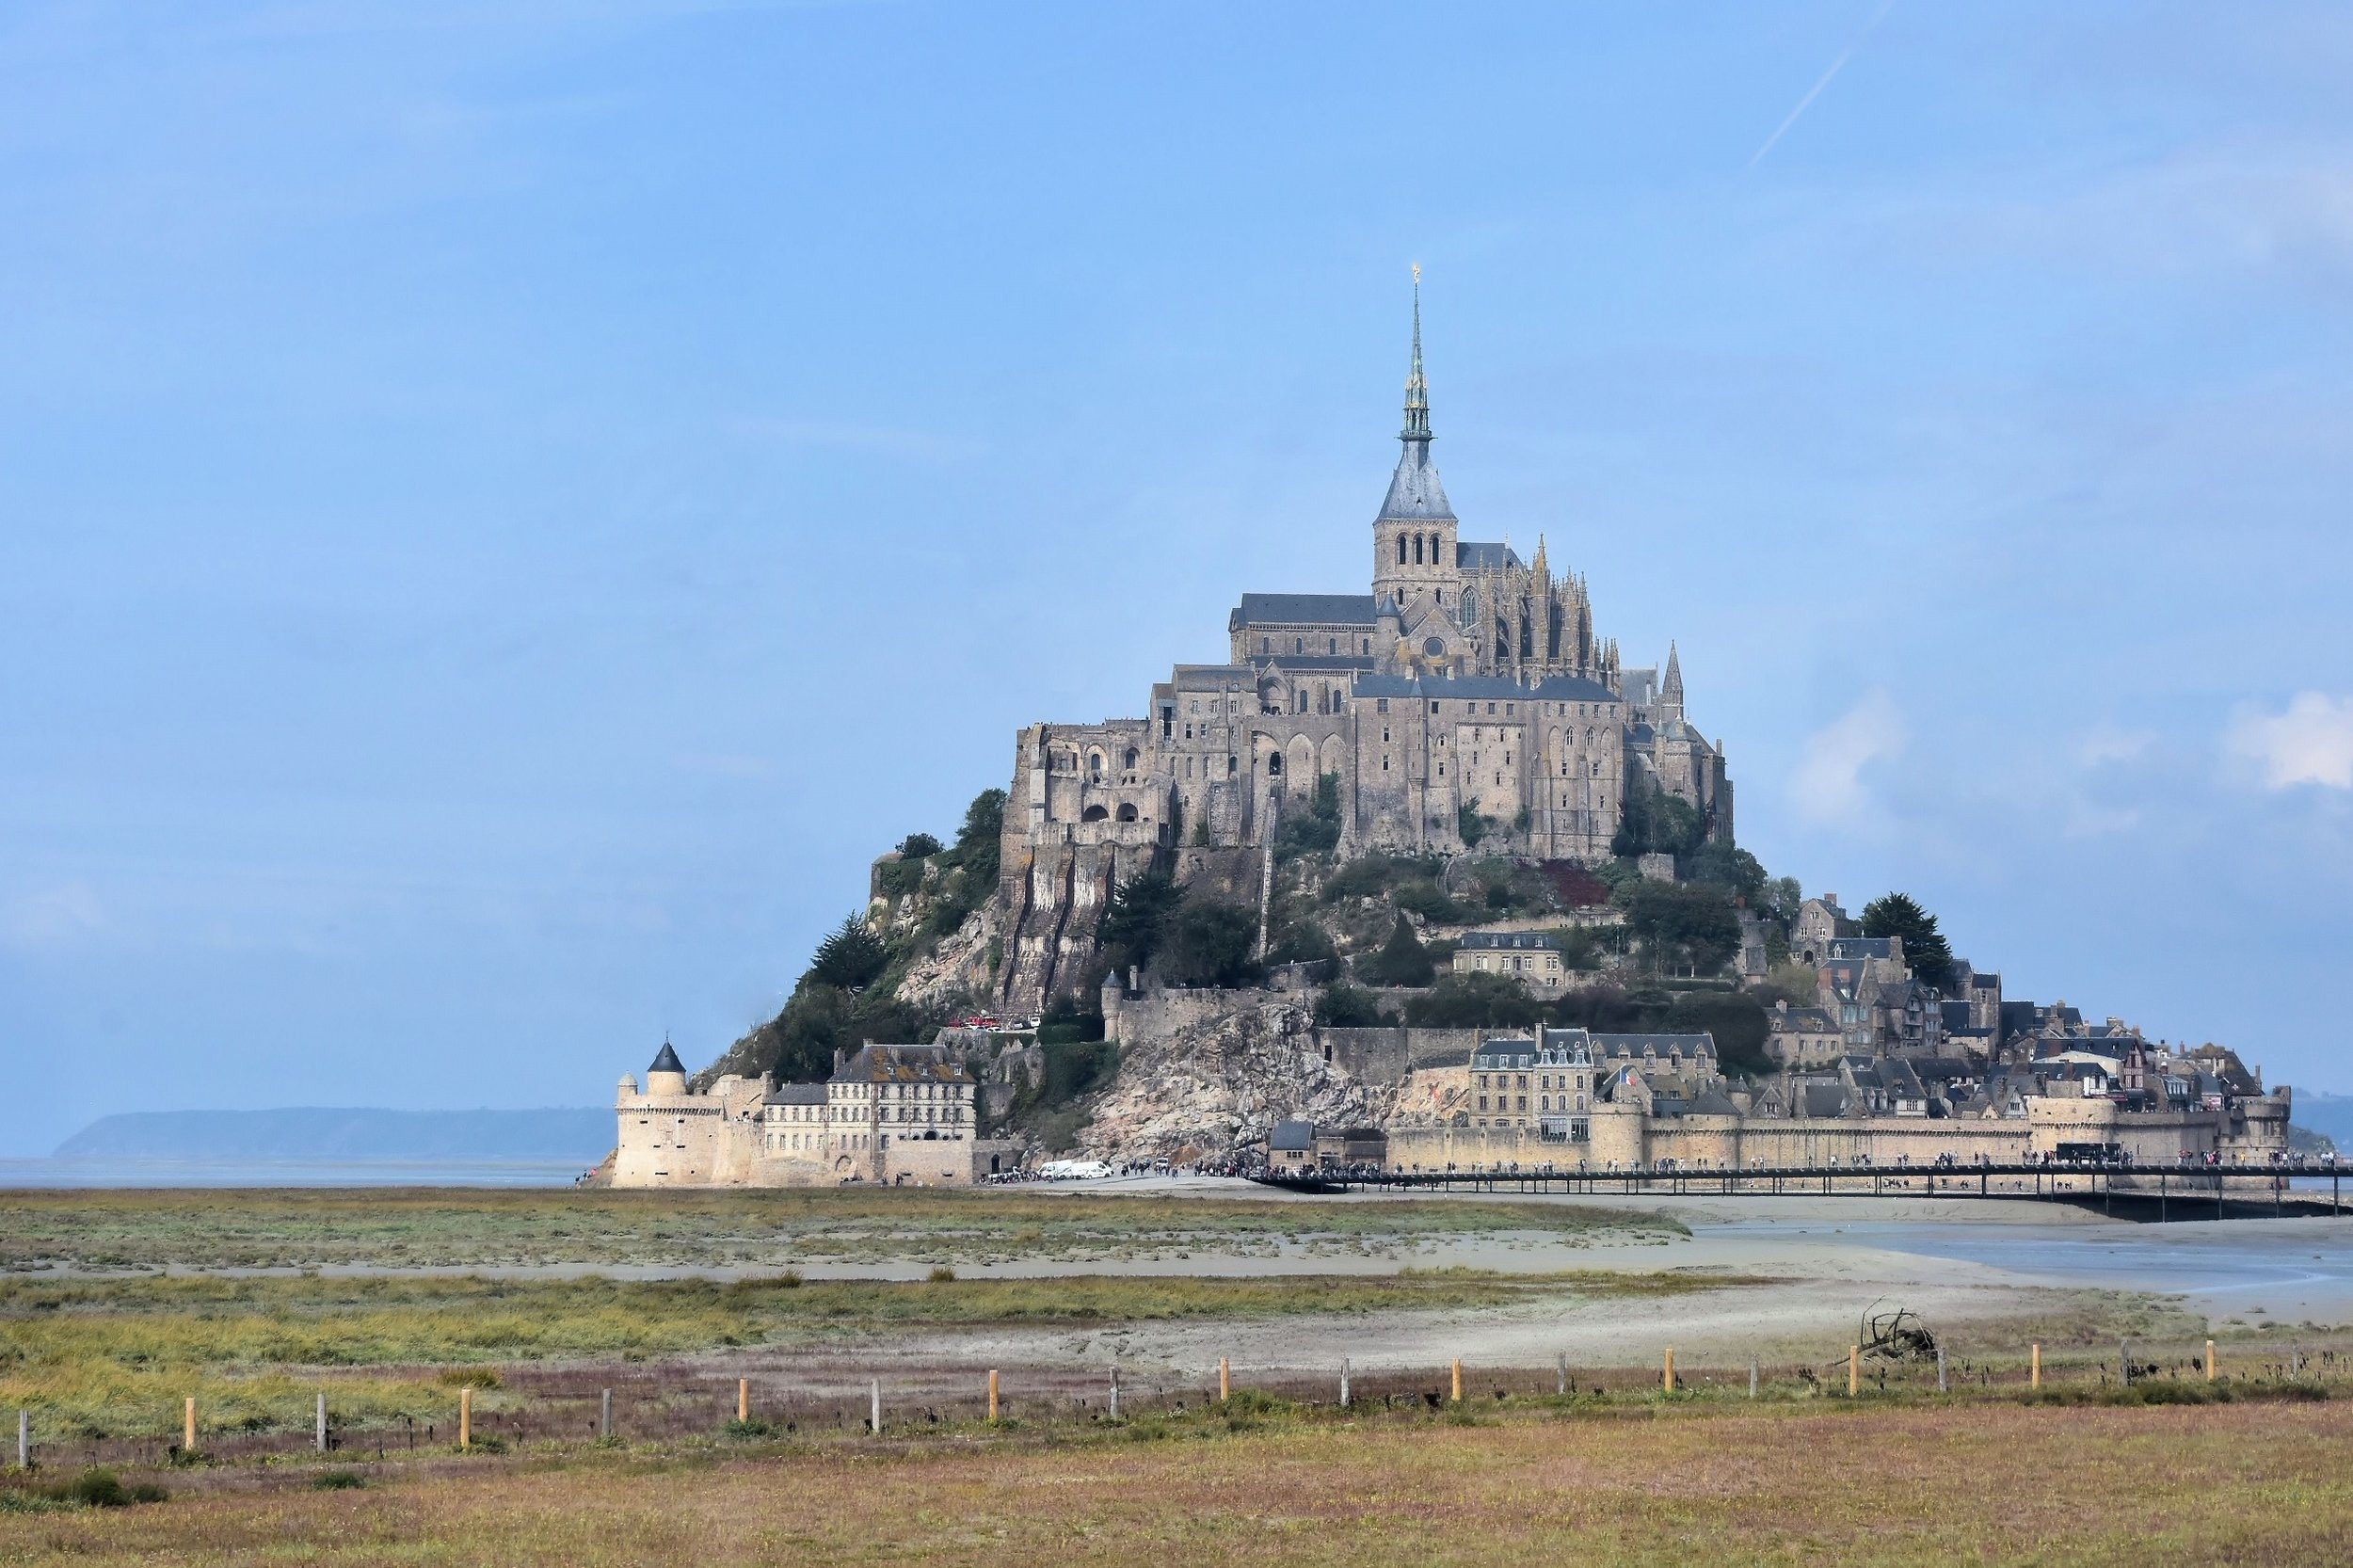 Mont St Michel in France continues to fascinate and mystify visitors from around the world. Third in popularity in France only behind the Eiffel Tower and the palace at Versailles, Mt St Michel attracts 3.5 million visitors per year. So much for monastic solitude...